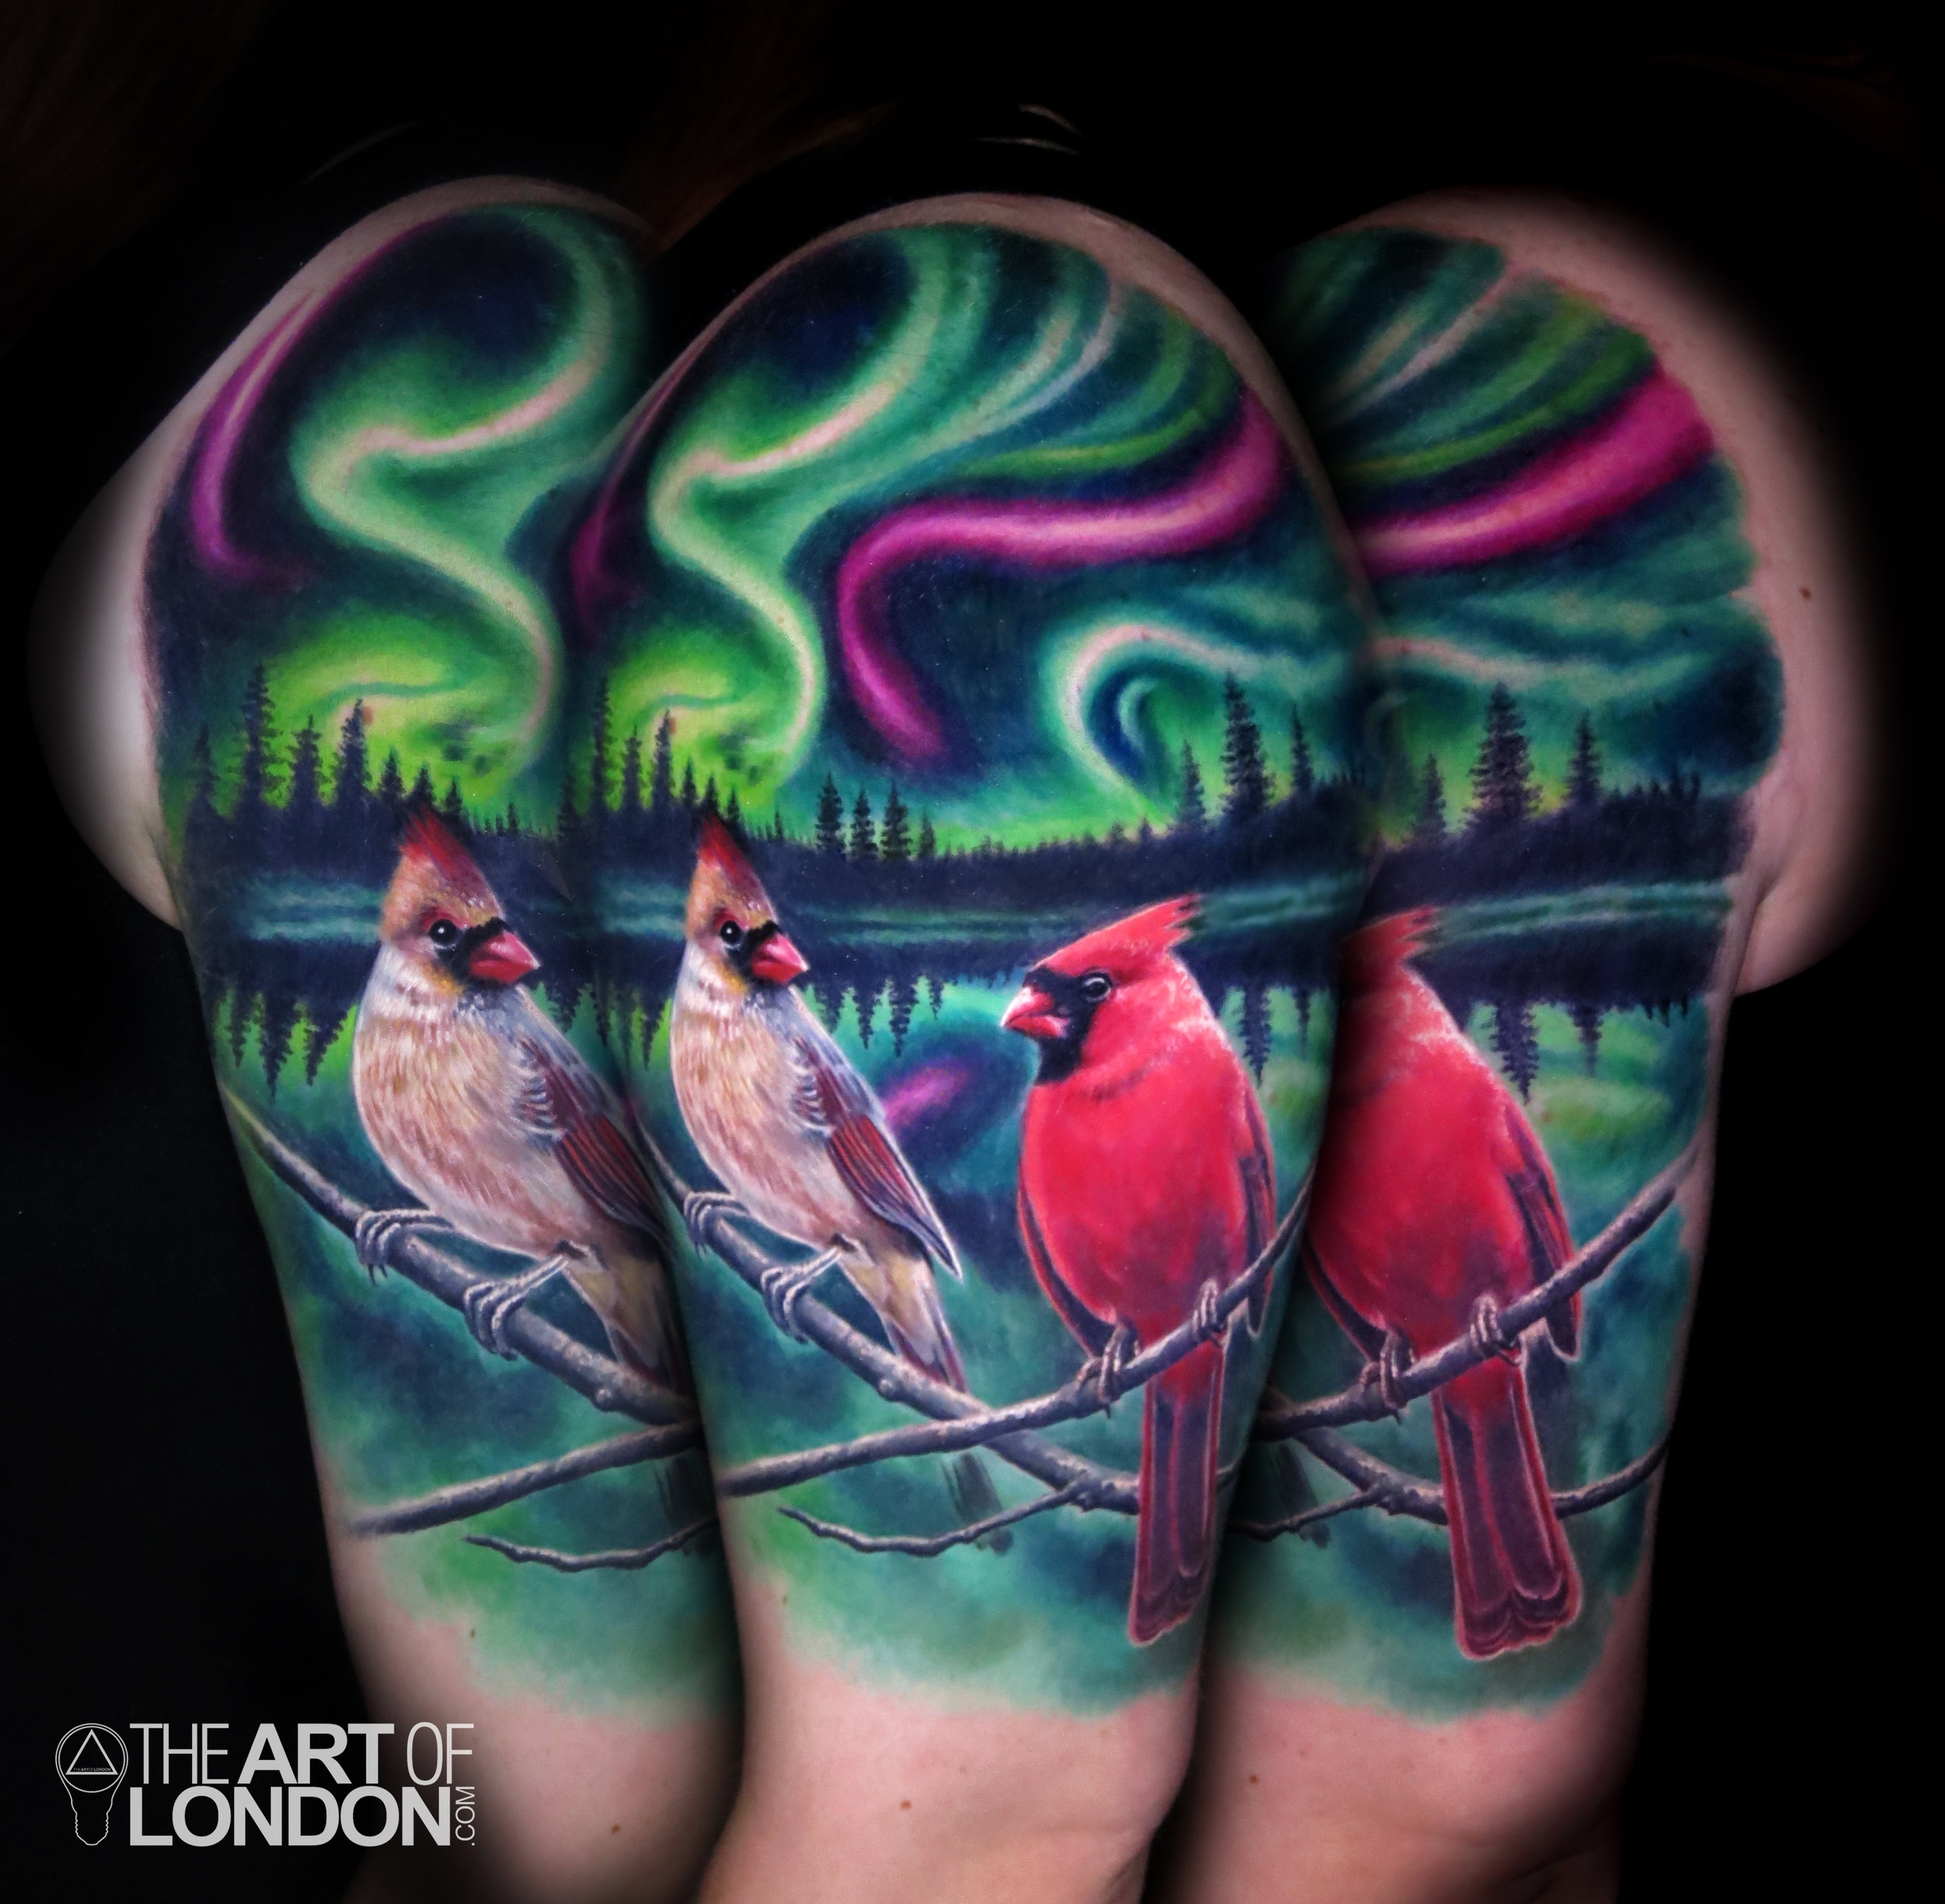 cardinals lovebirds northern lights aurora borealis tattoo.jpg